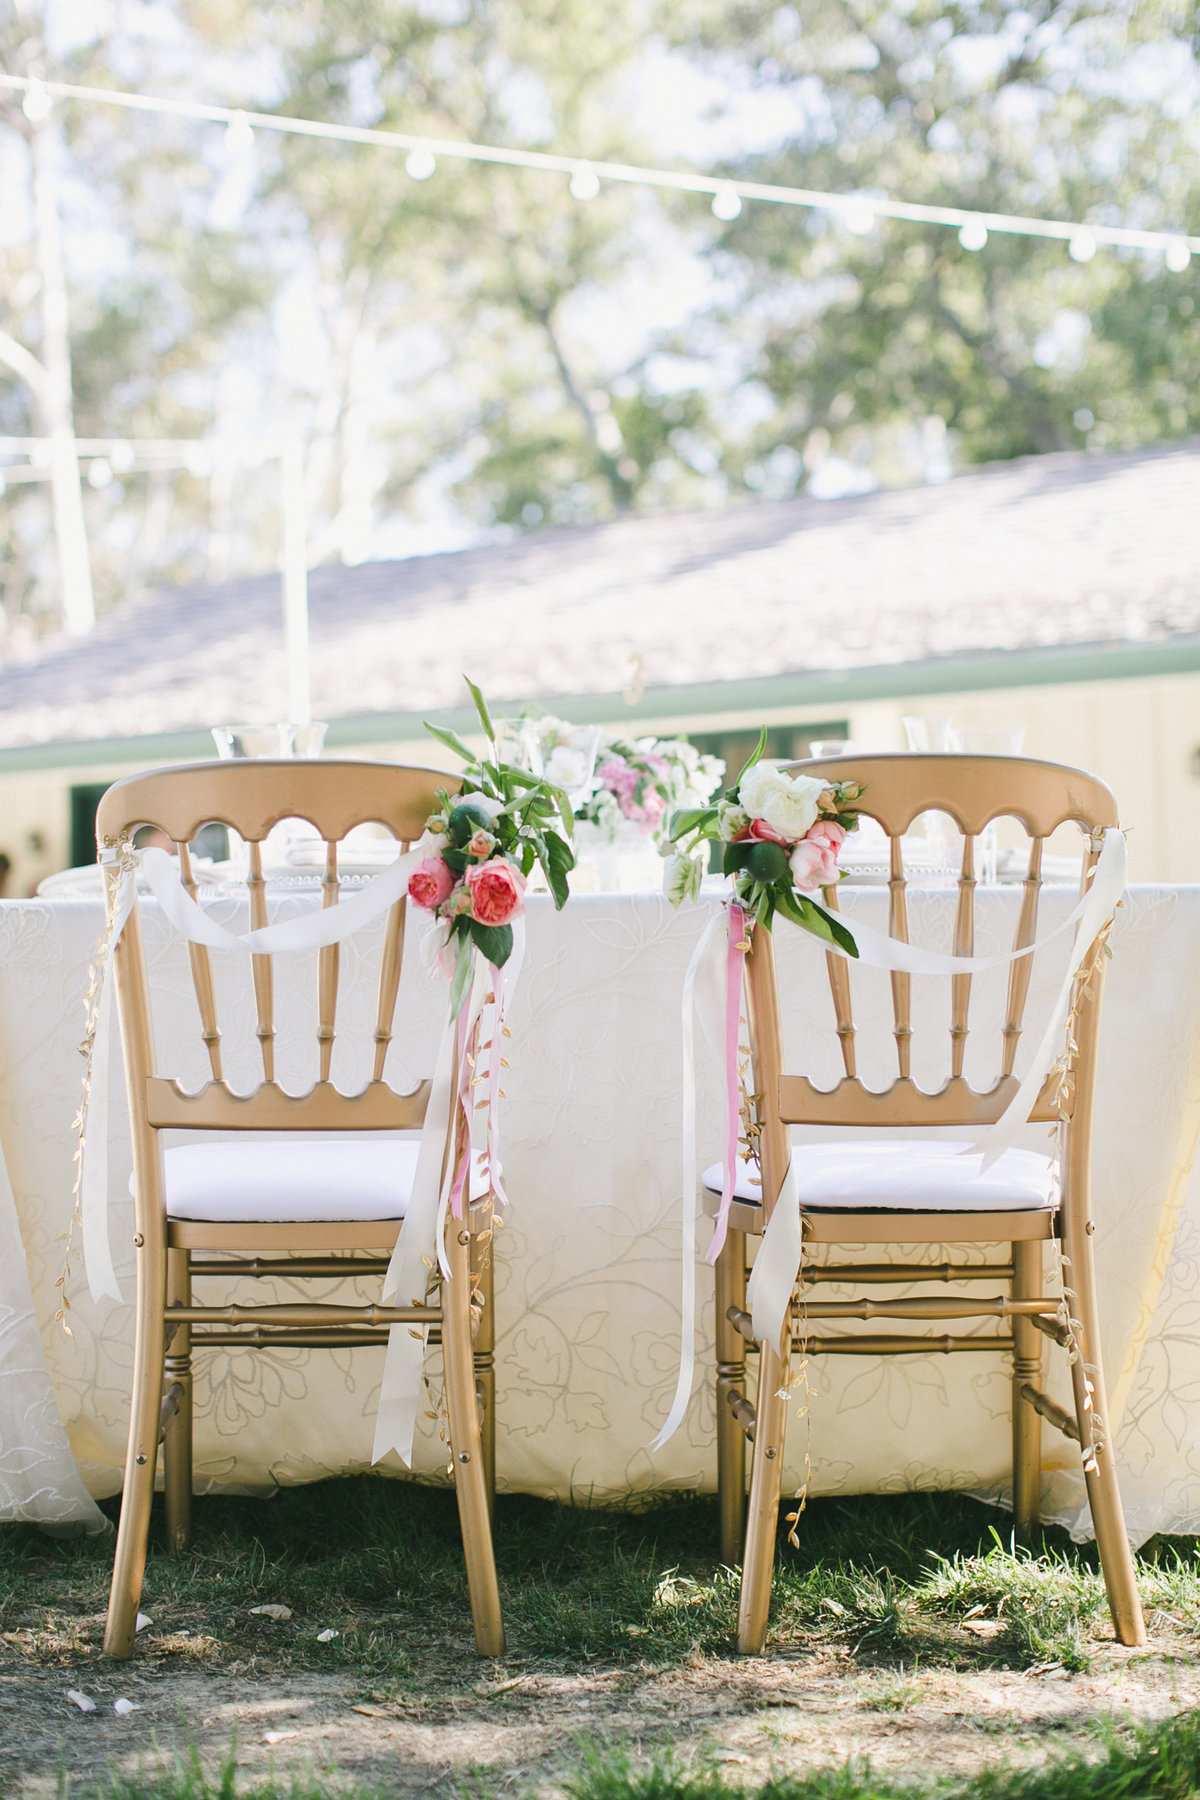 ahmason-ranch-santa-monica-calabasas-california-wedding-photographer-263